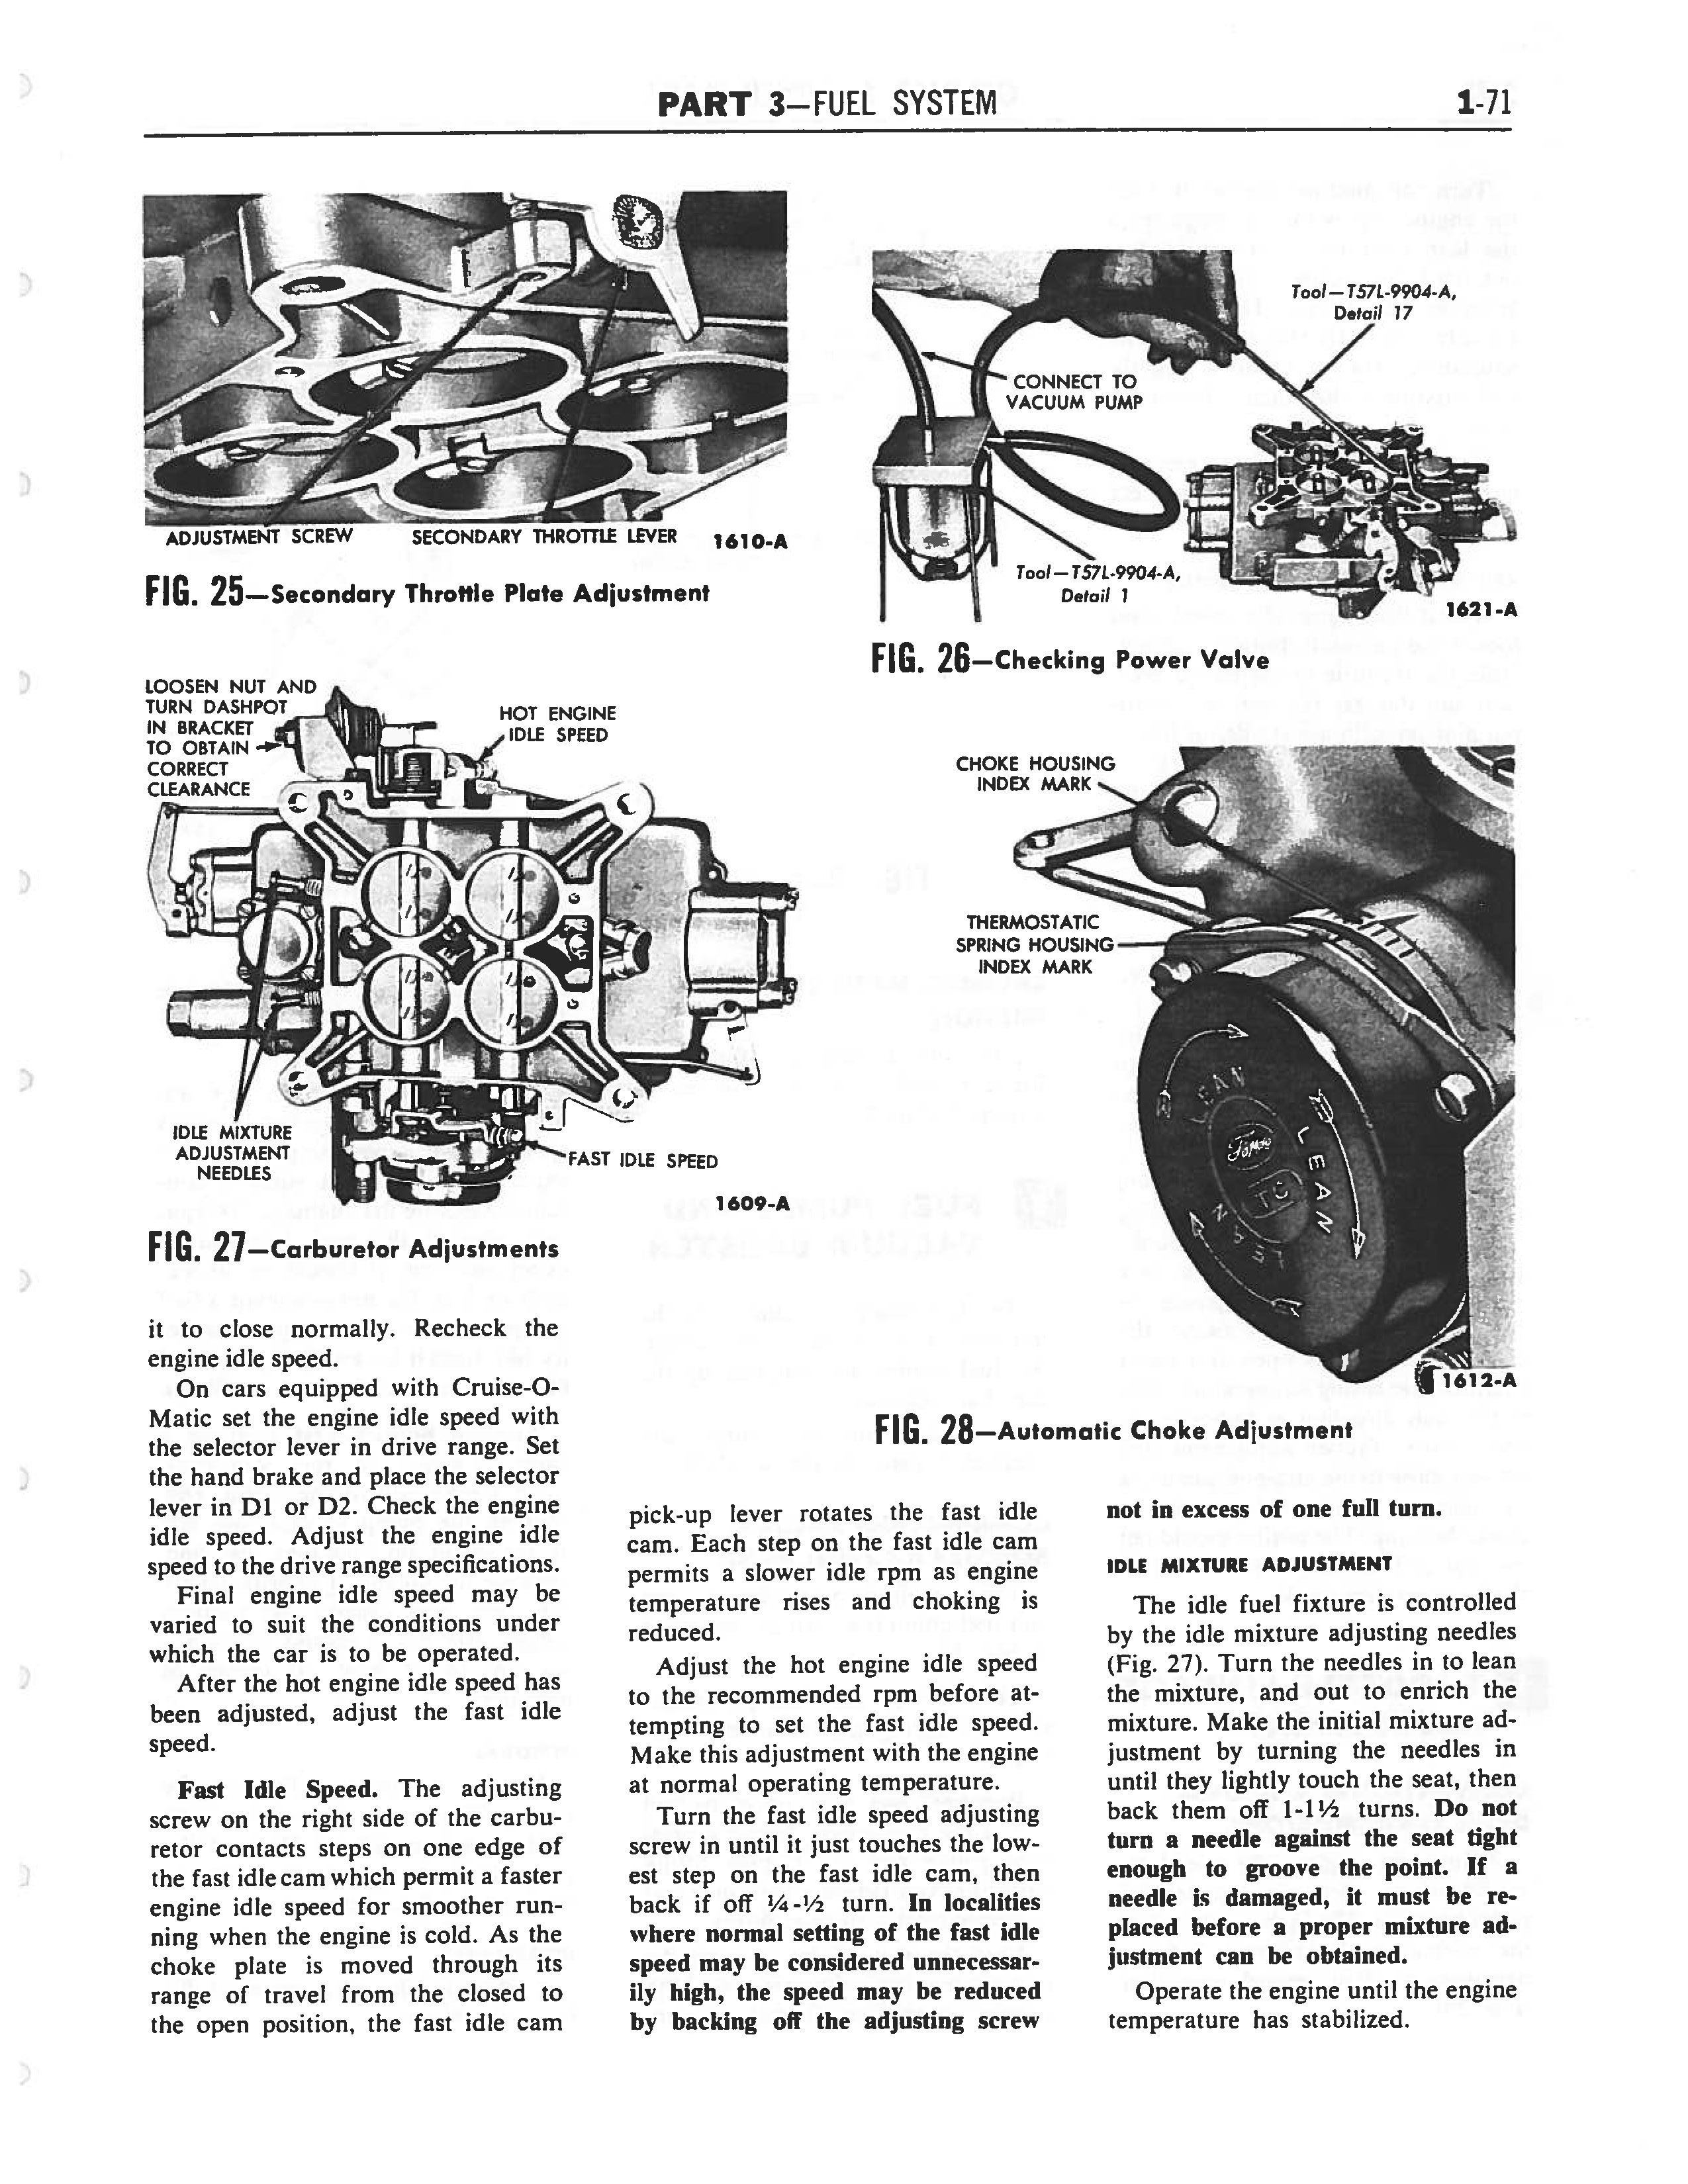 1958 Ford Thunderbird Shop Manual page 75 of 360